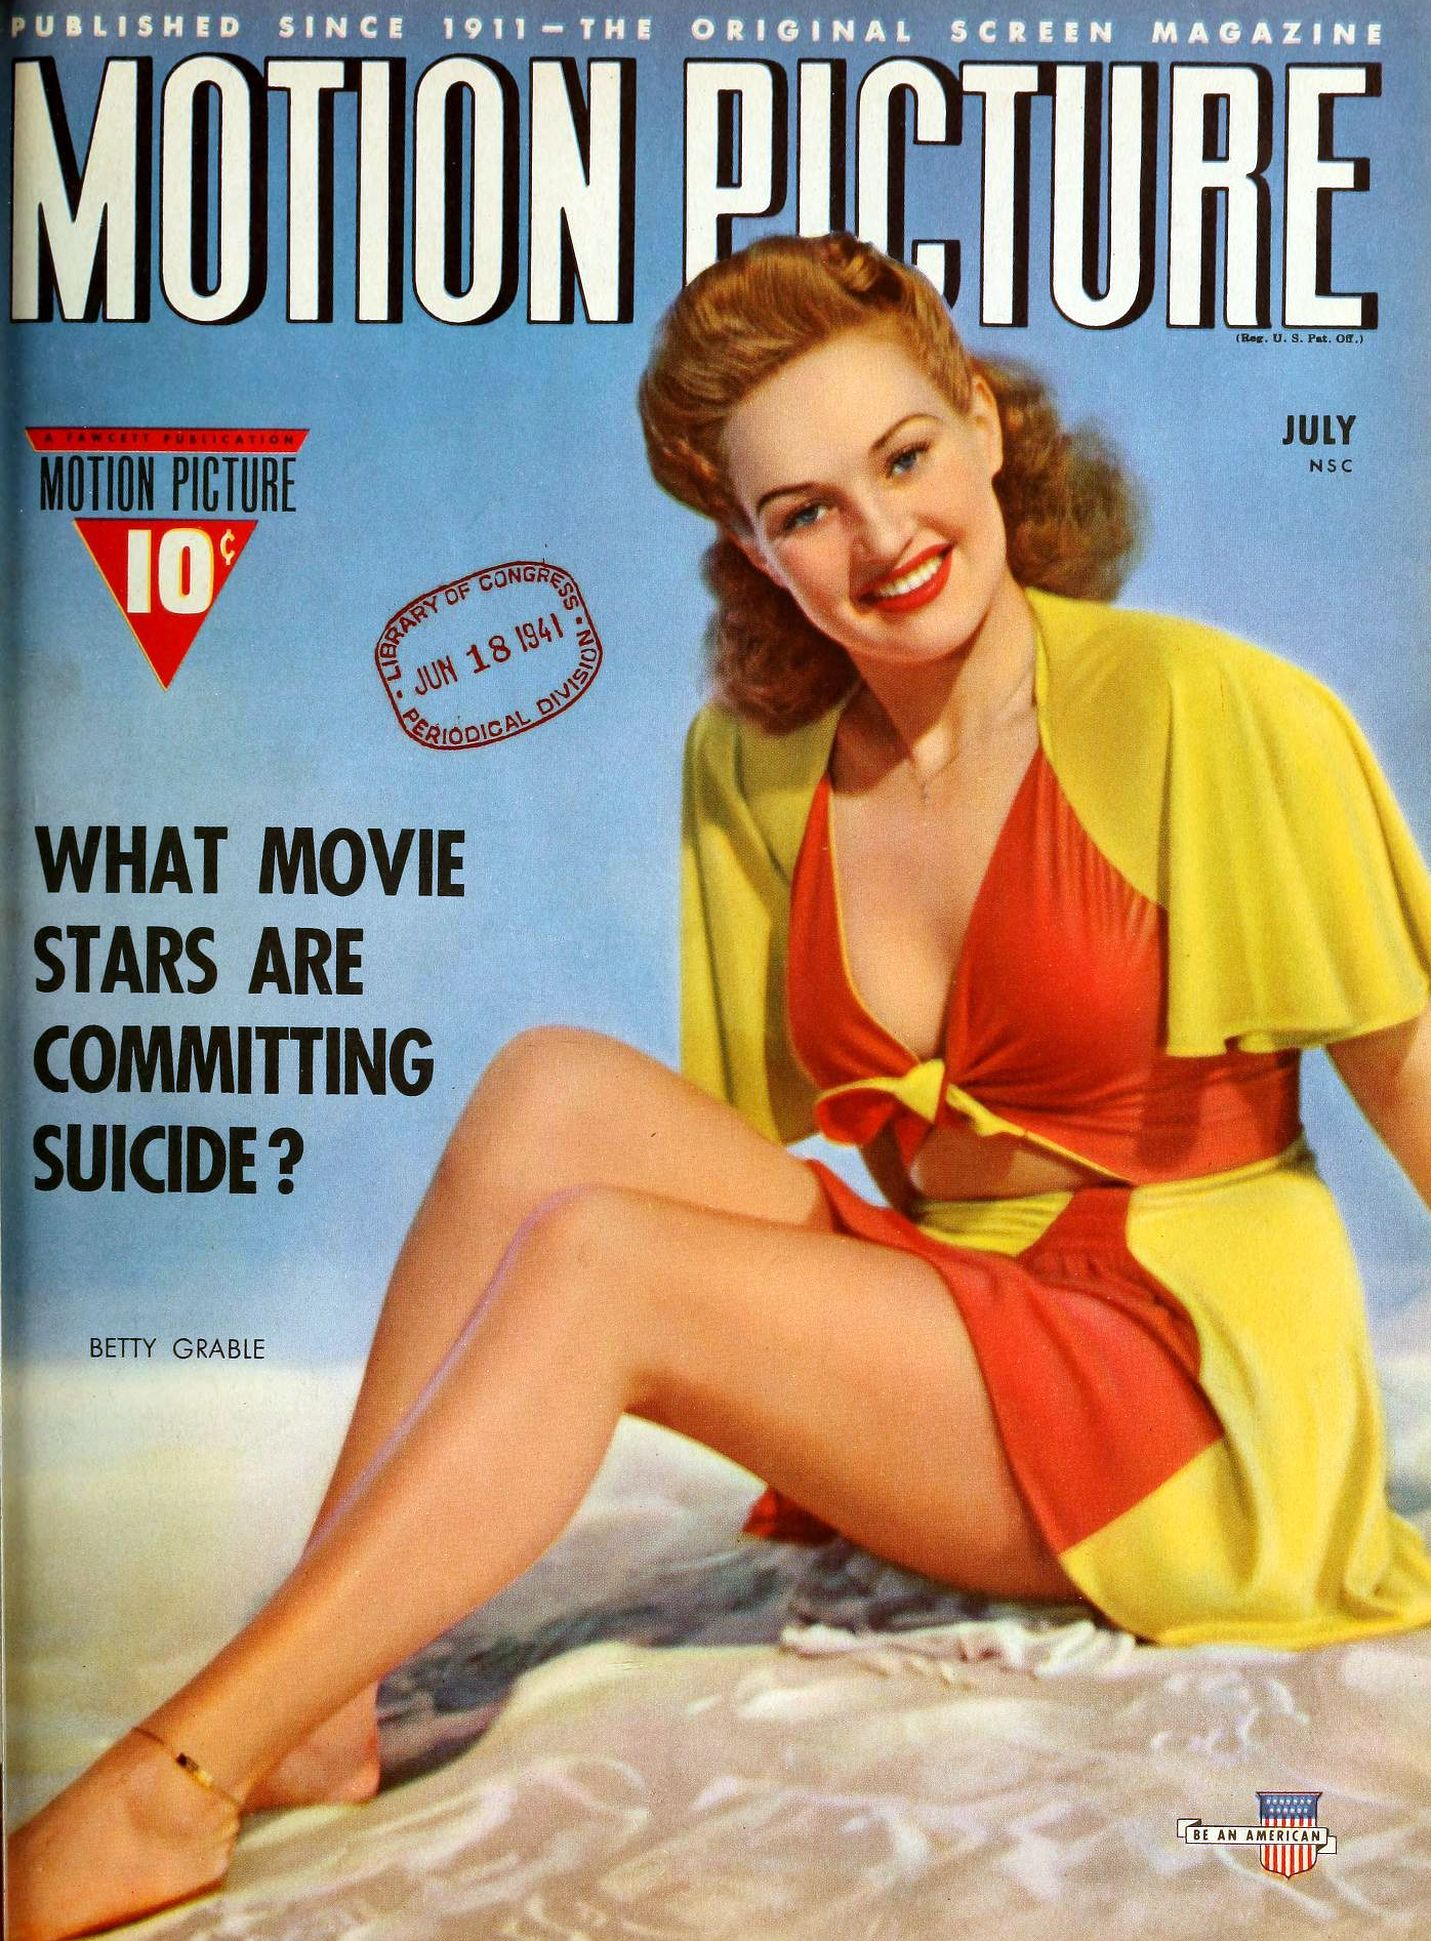 motion picture july 1941. large